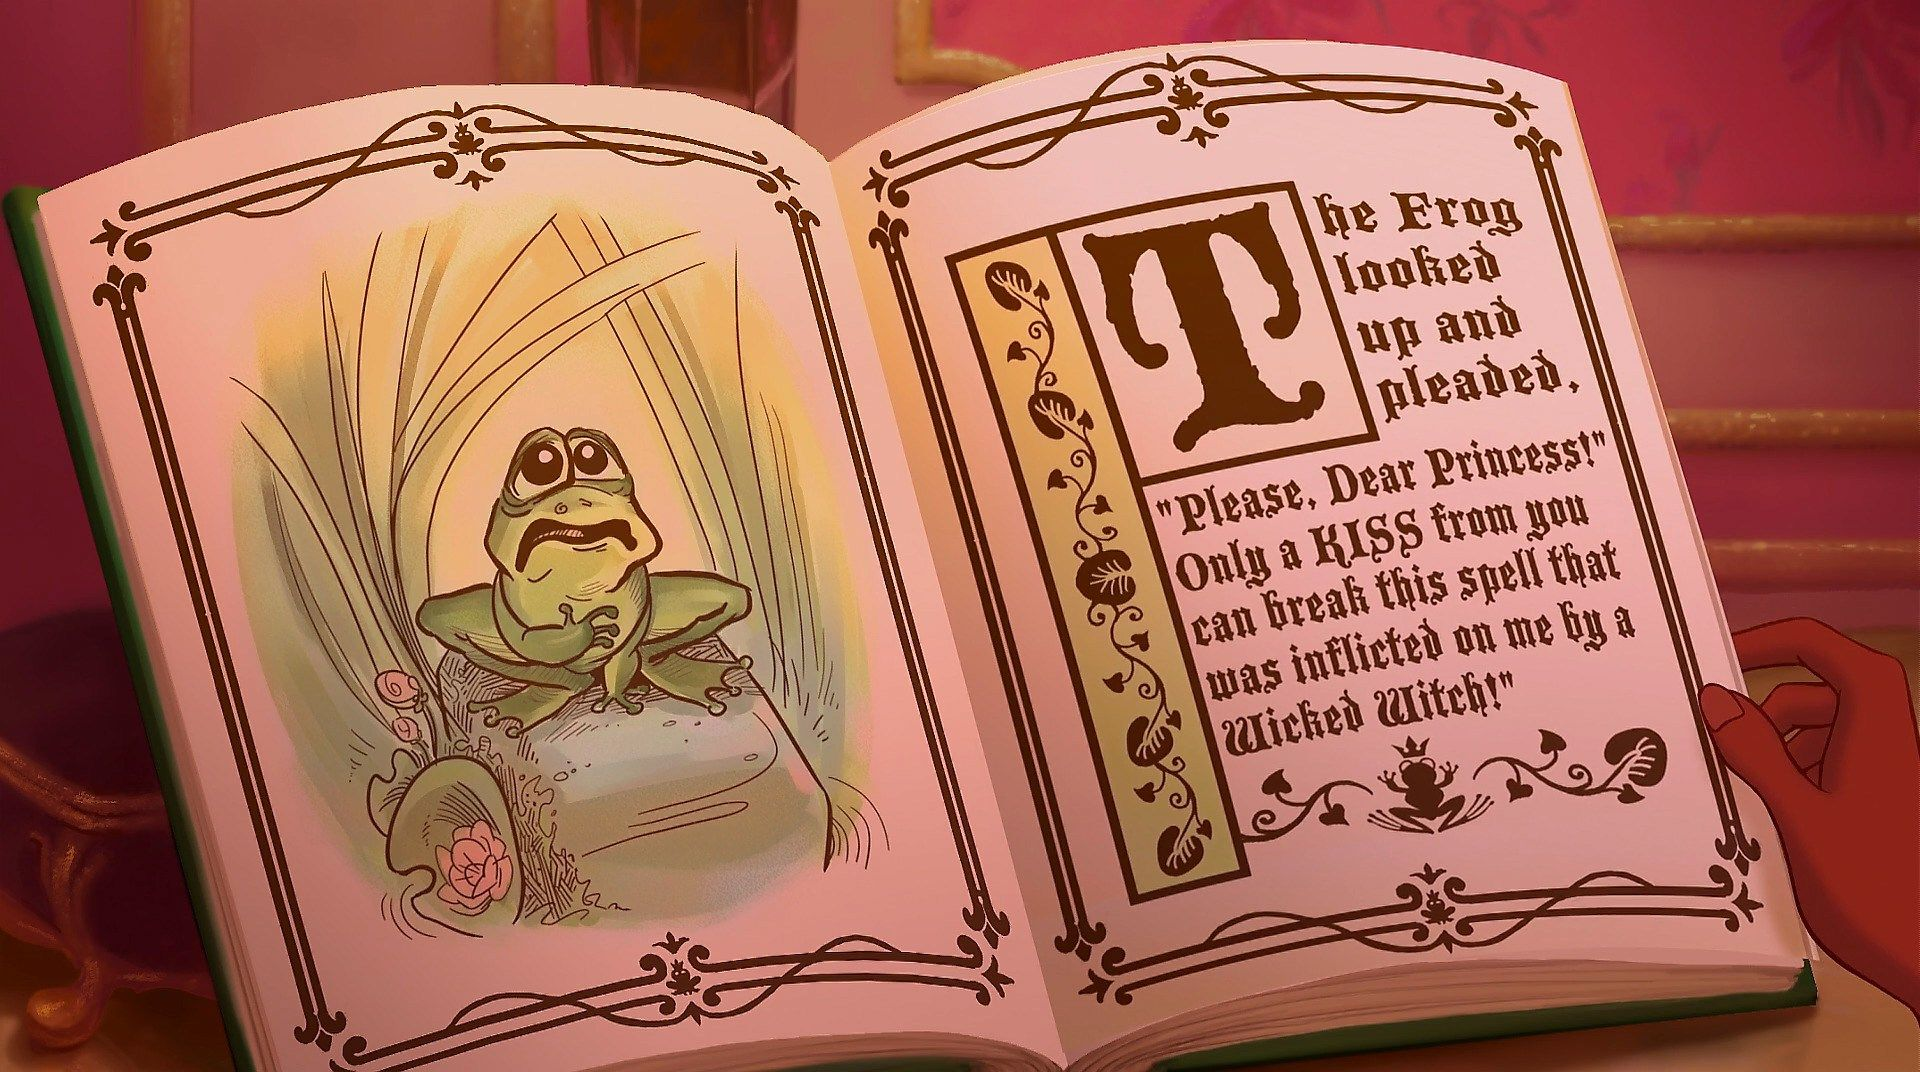 Screencaps The Princess and the Frog 2009 | The Princess and the Frog (2009) - Disney Screencaps